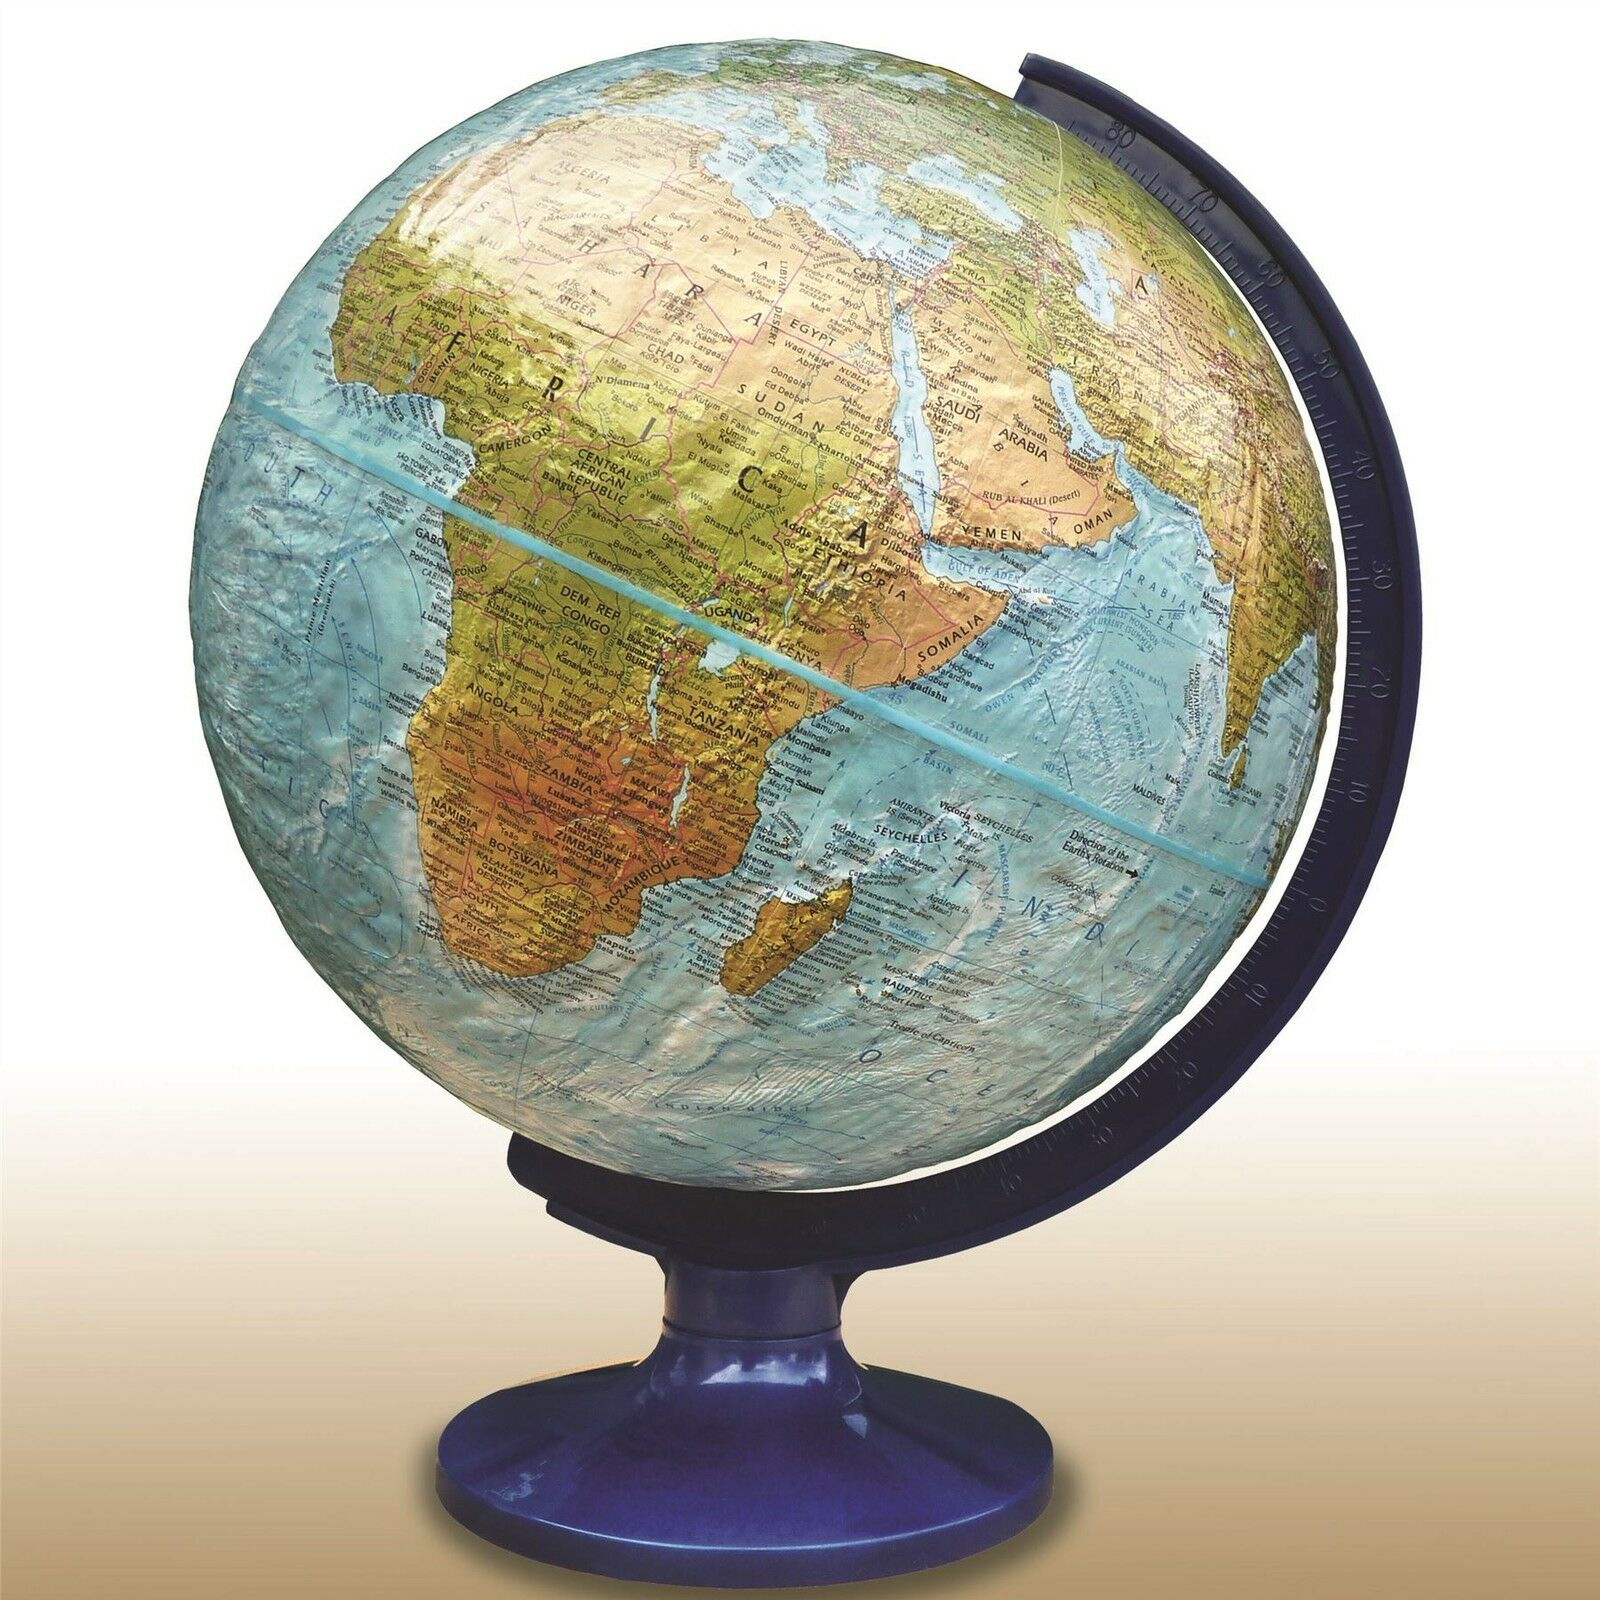 Early Learners Globe (Physical) For Schools